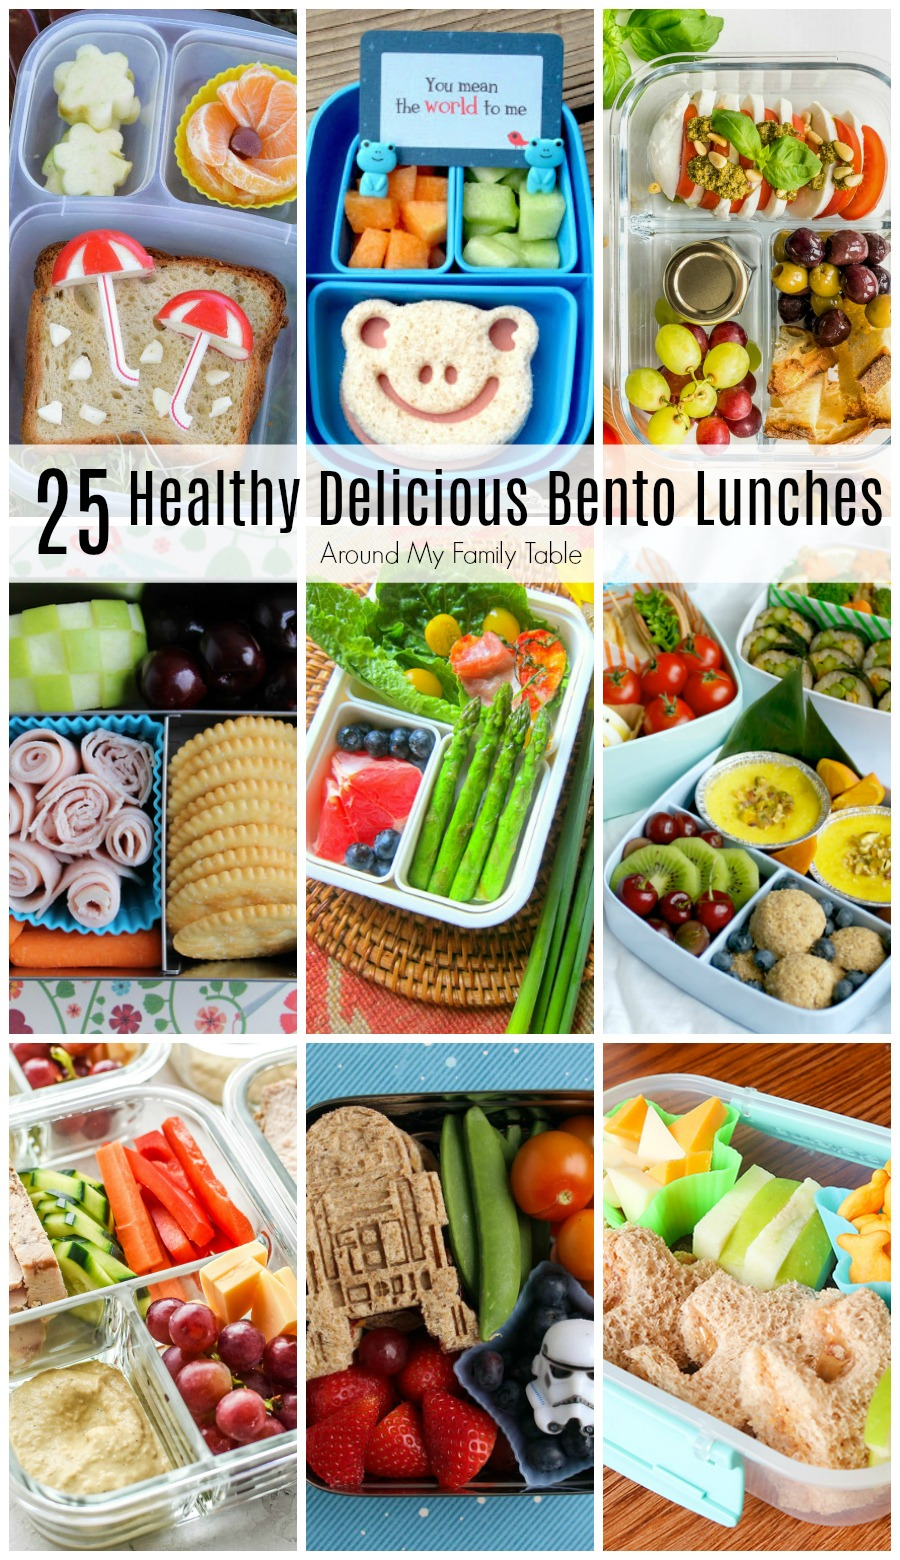 Packing school lunches can be fun with these Healthy & Delicious Bento Lunches. Kids {and parents} will love to eat them too. #bento #lunches #bentolunch #schoollunch #bentobox